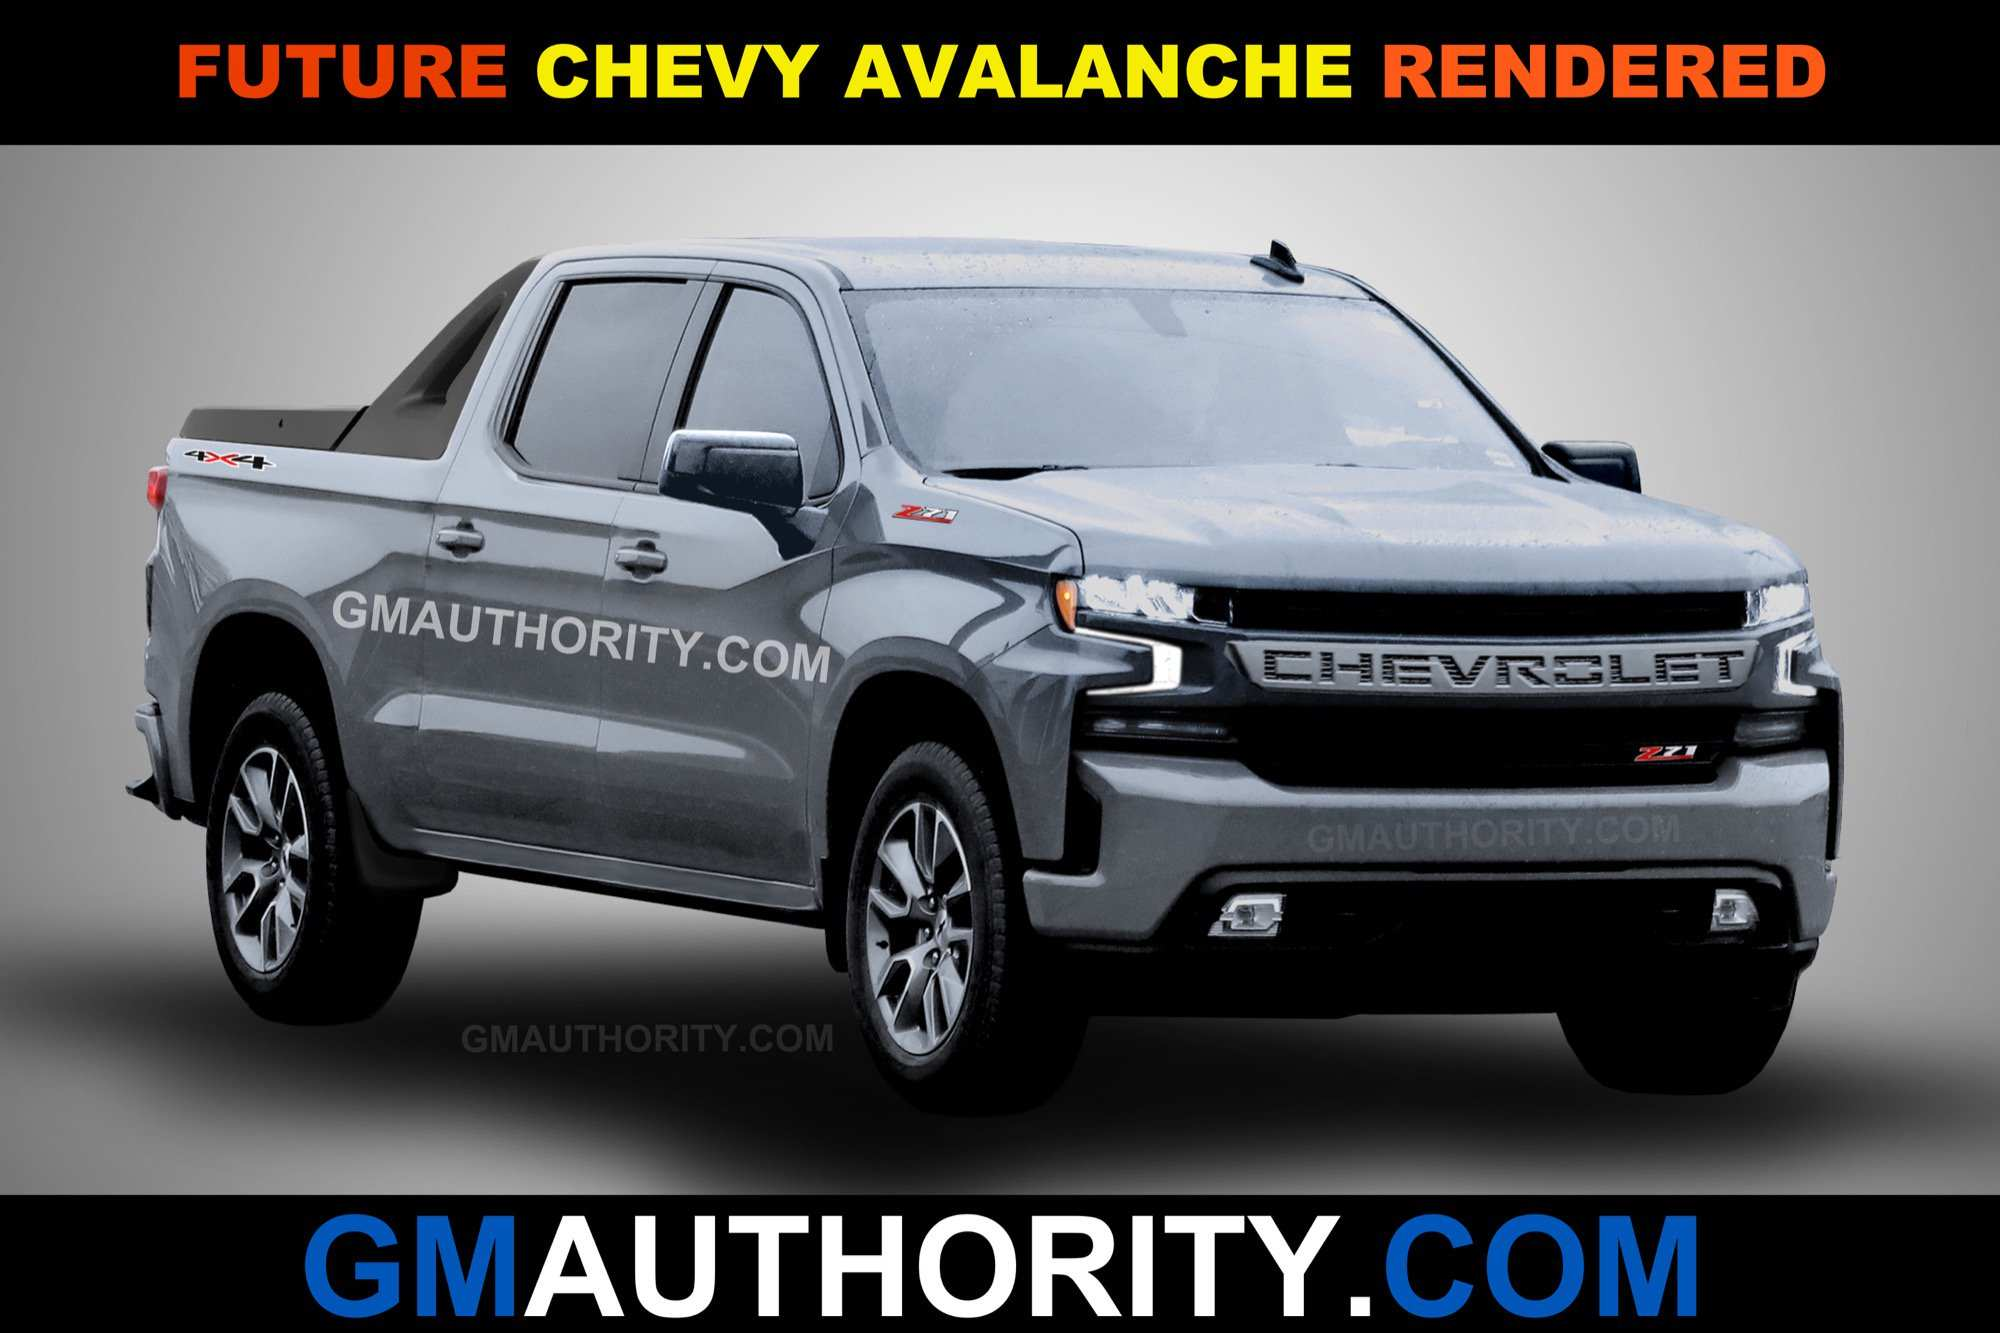 27 Concept of 2019 Chevy Avalanche New Review for 2019 Chevy Avalanche